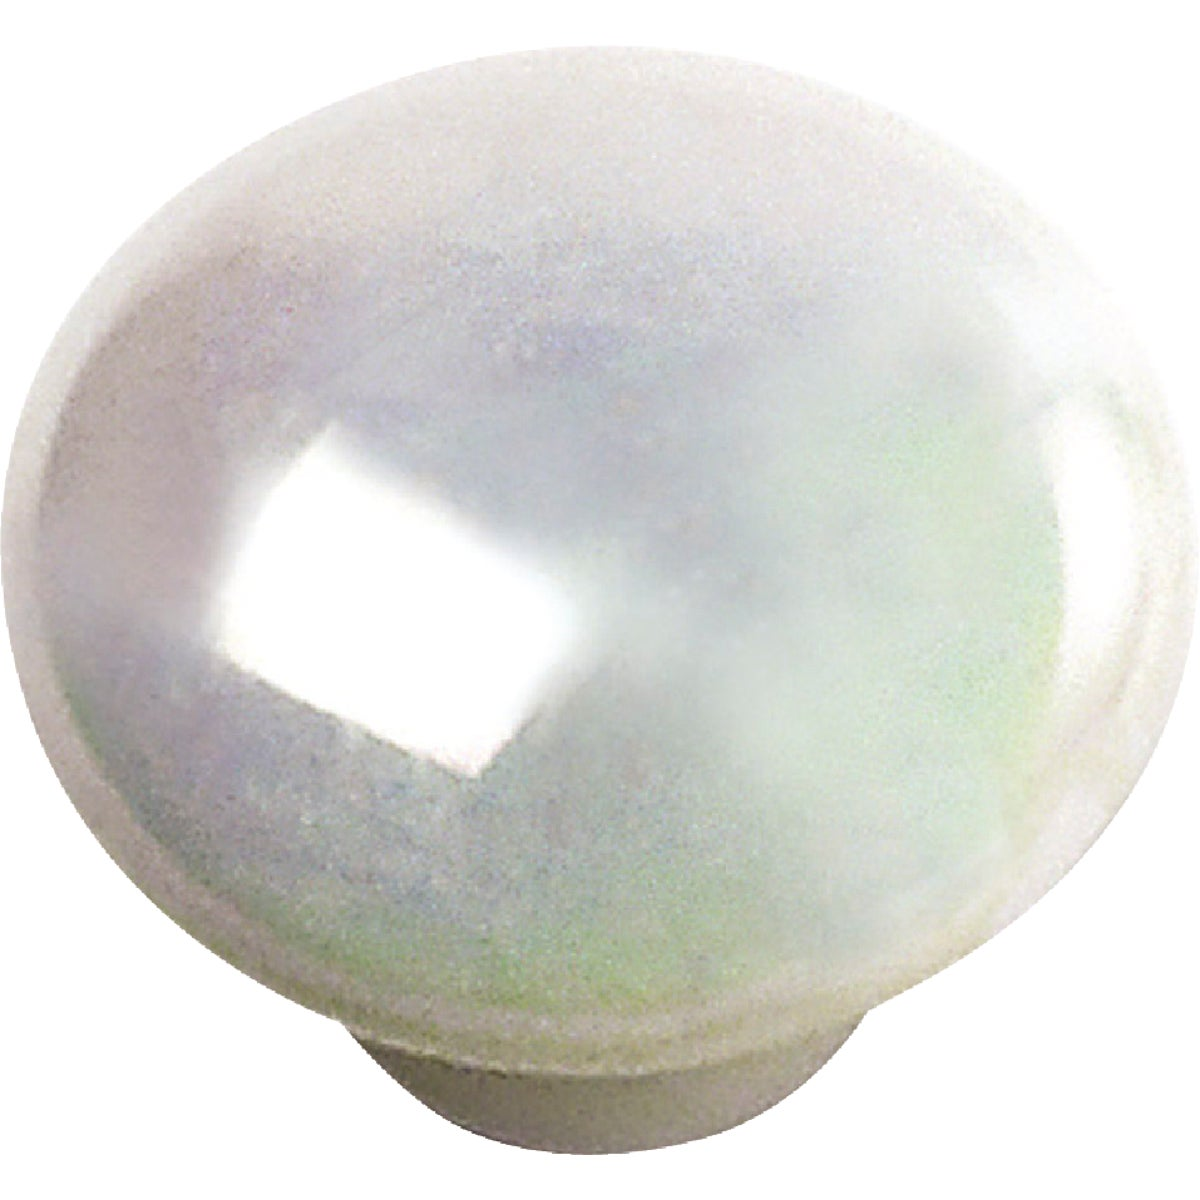 1-1/4 OPAL CERAMIC KNOB - 01695 by Laurey Co